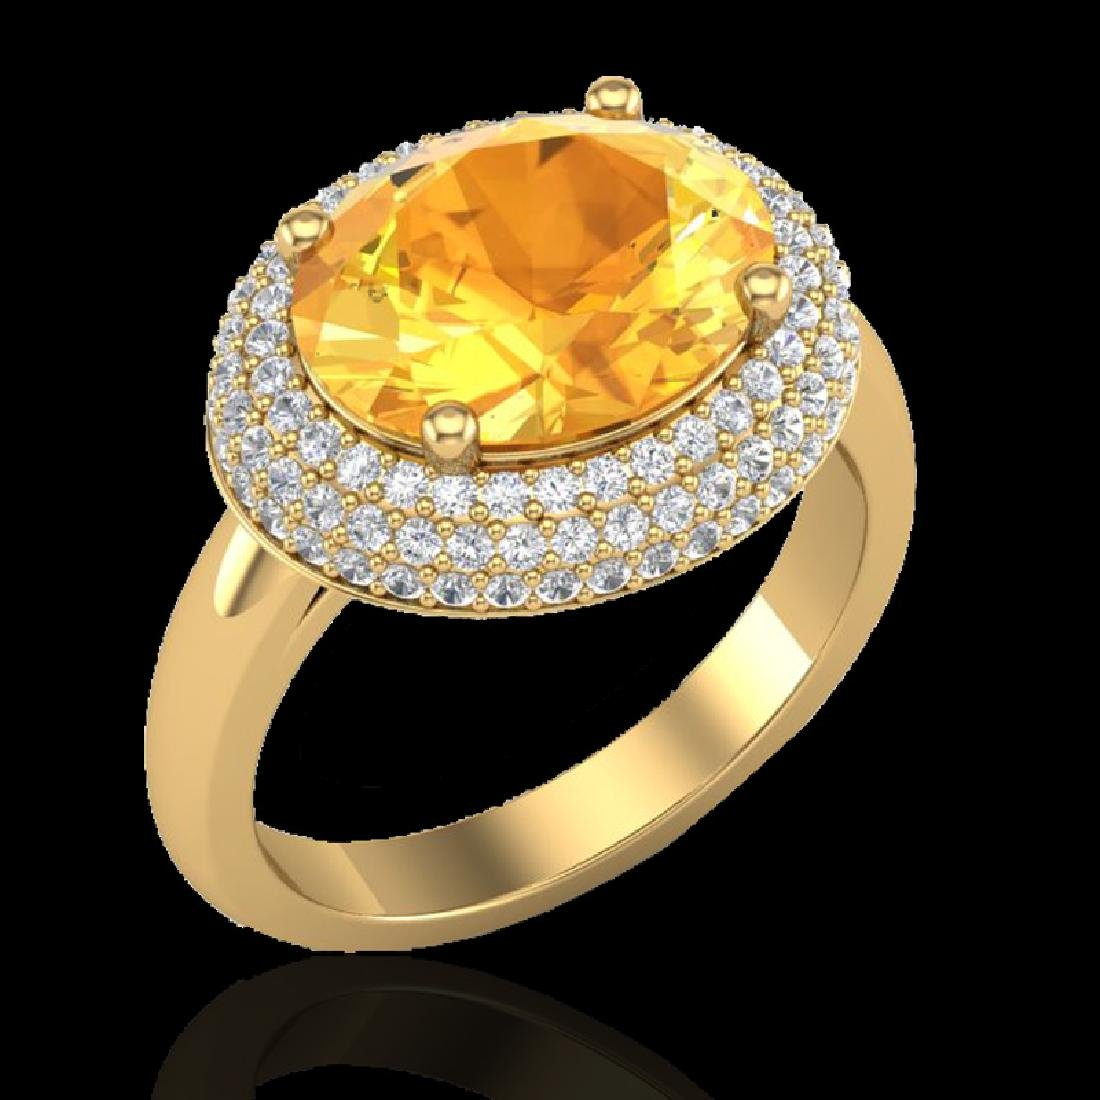 4 CTW Citrine & Micro Pave VS/SI Diamond Ring 18K